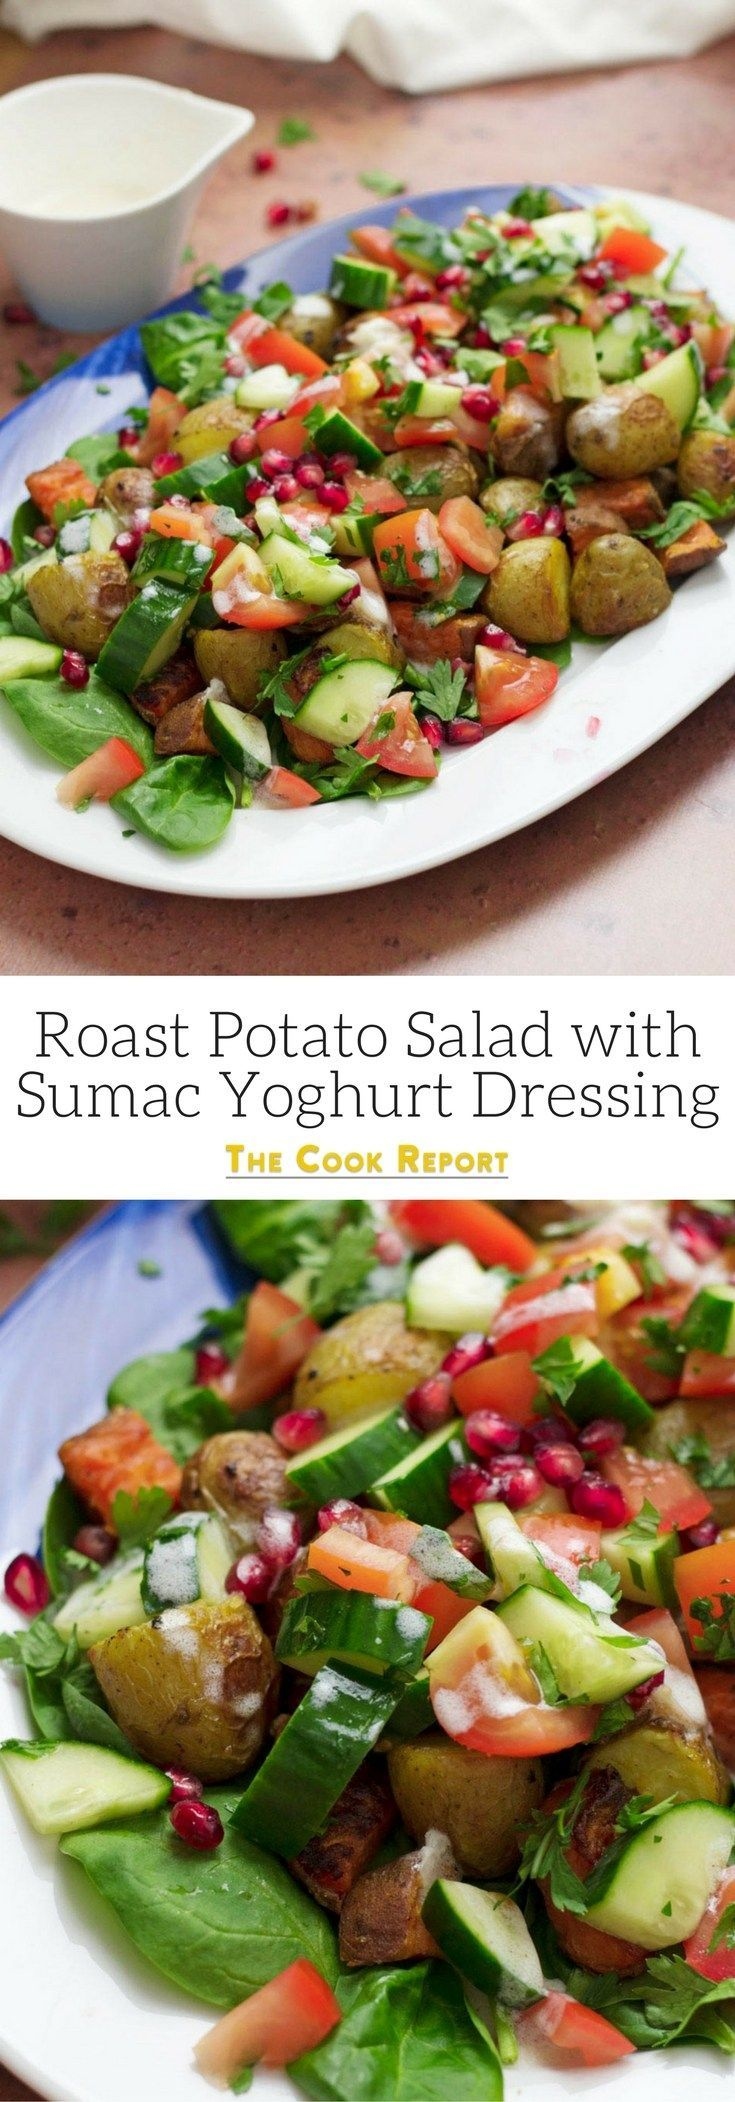 Forget about your boring old potato salad, this roast potato salad recipe uses normal & sweet potatoes with a sumac yoghurt dressing to make a tasty dinner!